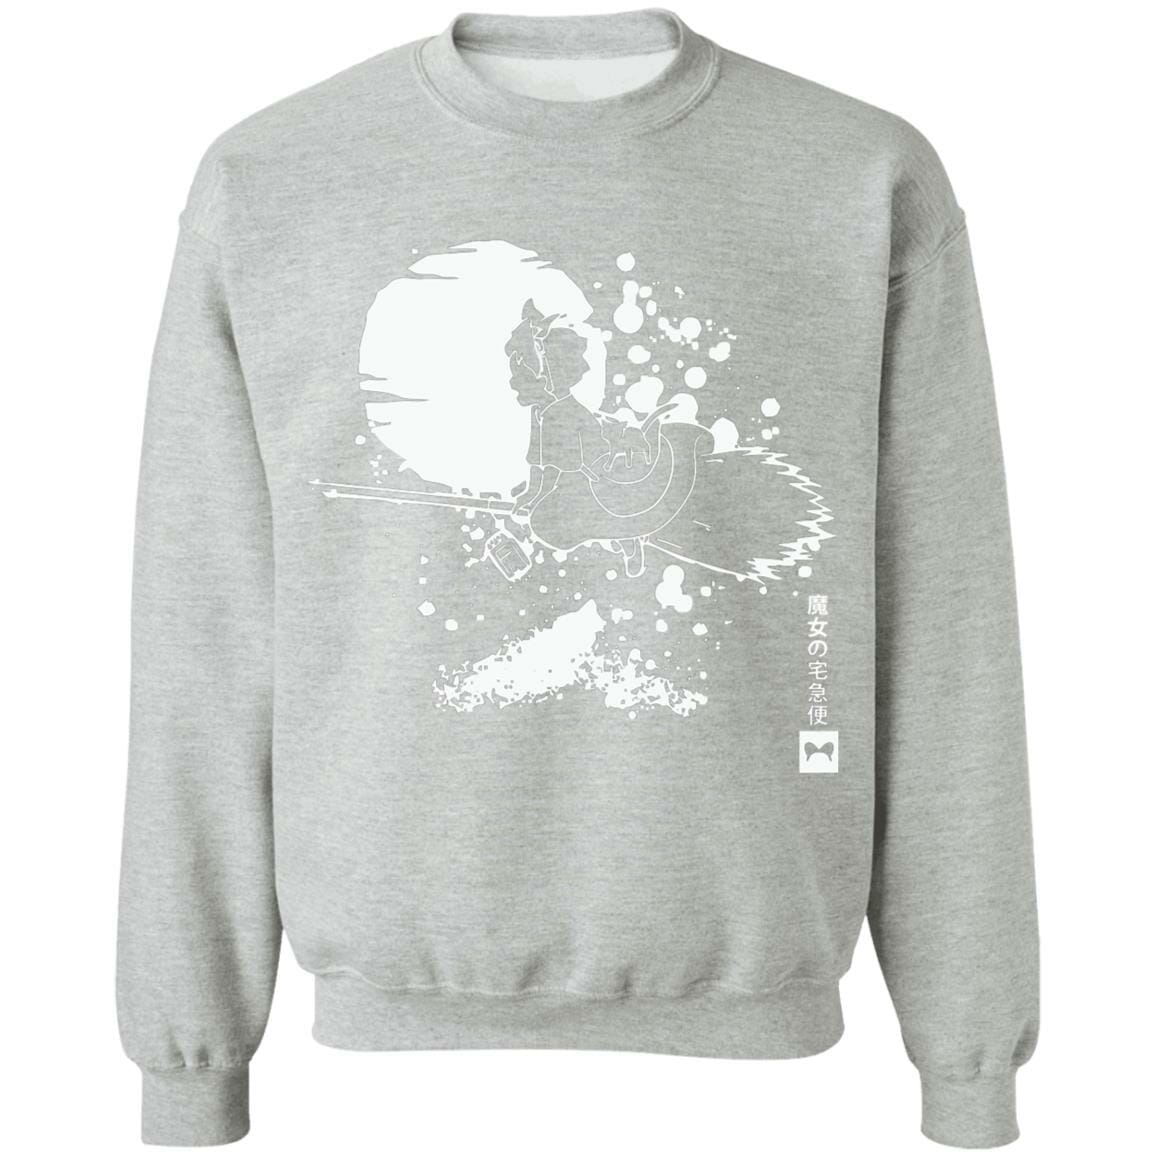 Kiki's Delivery Service – Flying in the night Sweatshirt Unisex